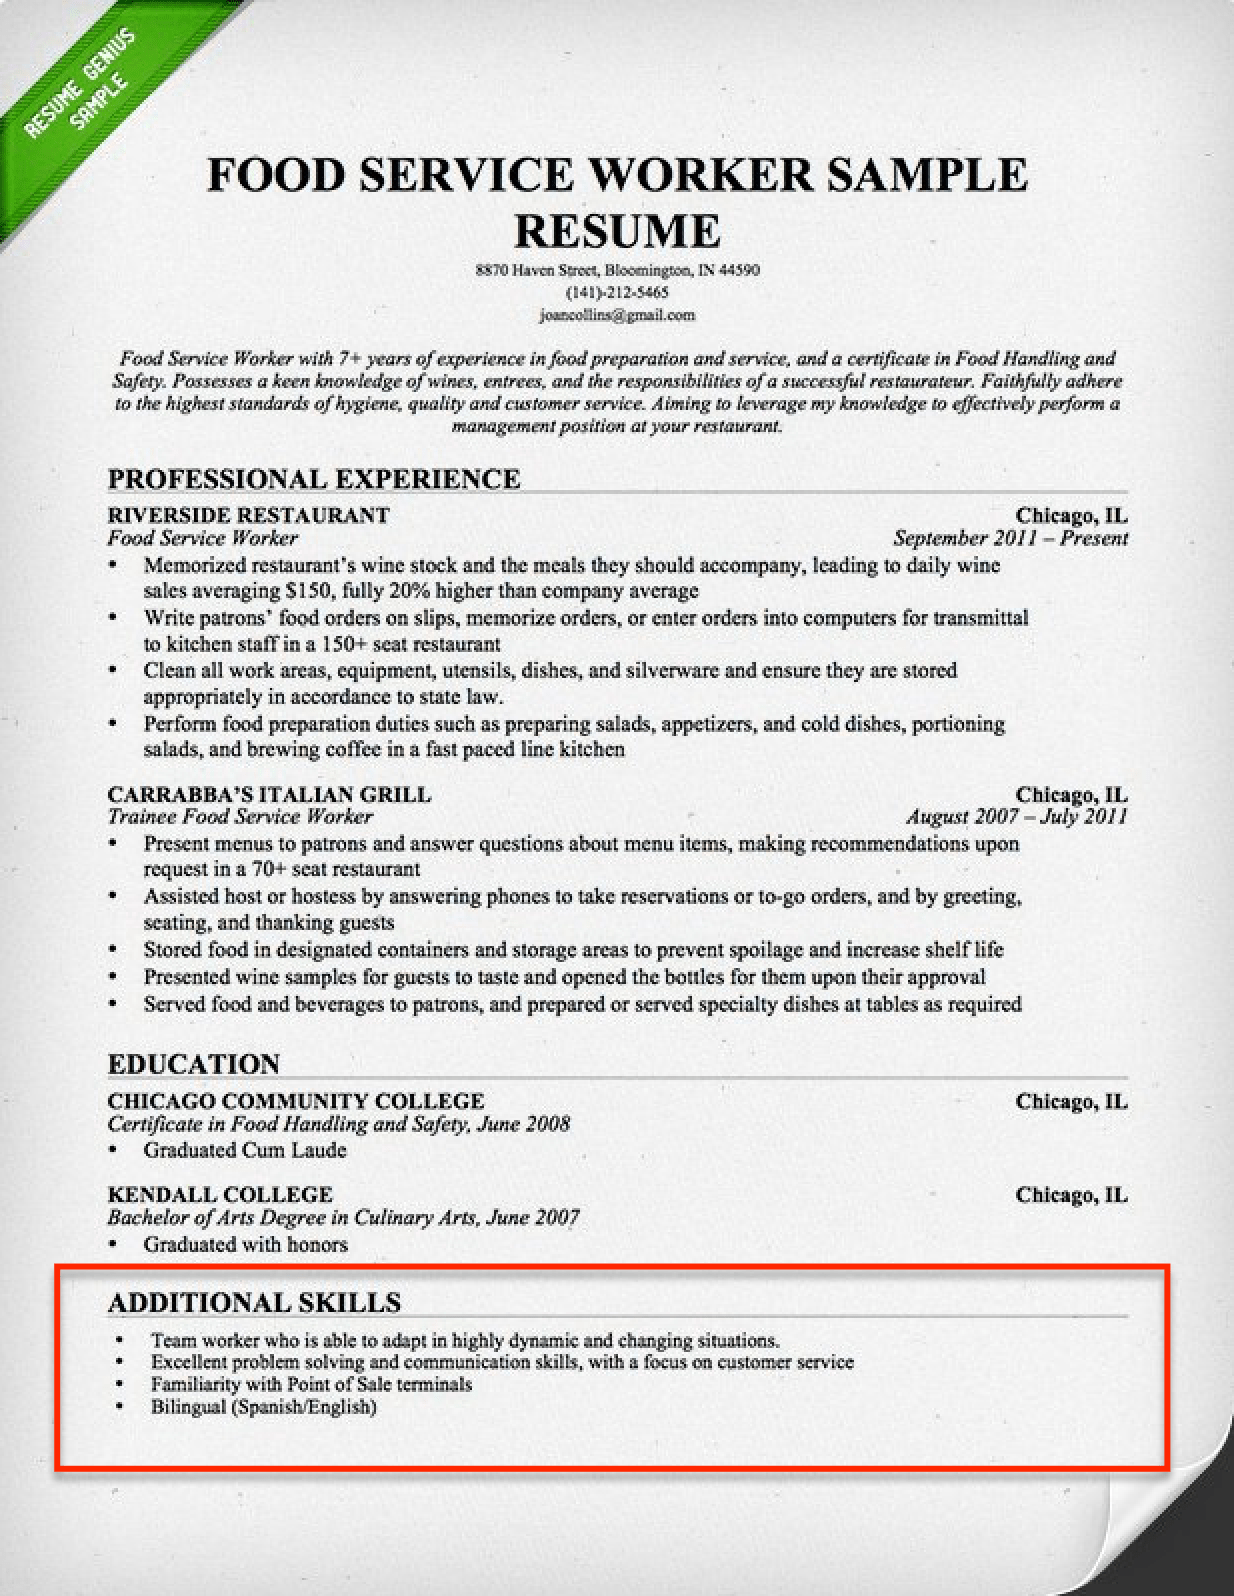 resume examples skills and abilities section